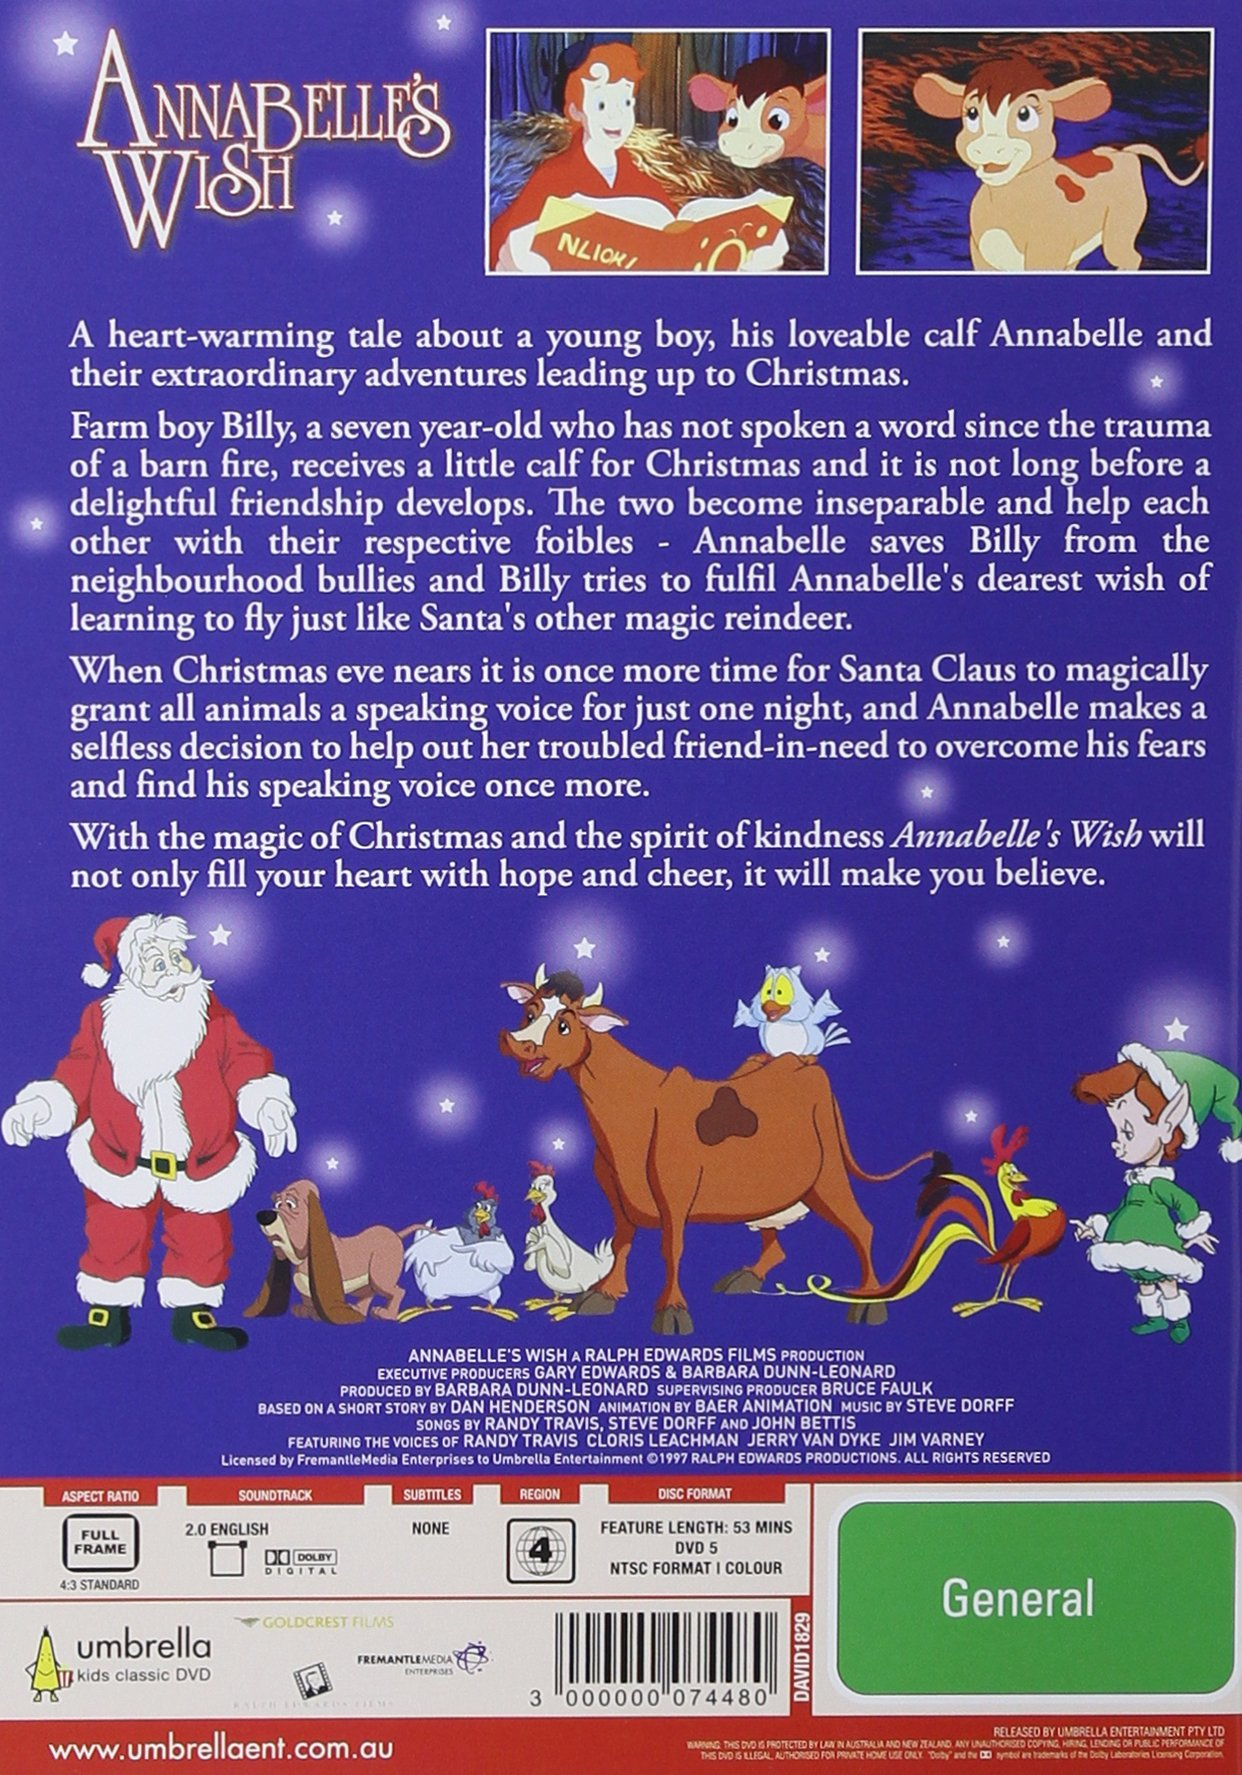 Annabelle's Wish by Imports